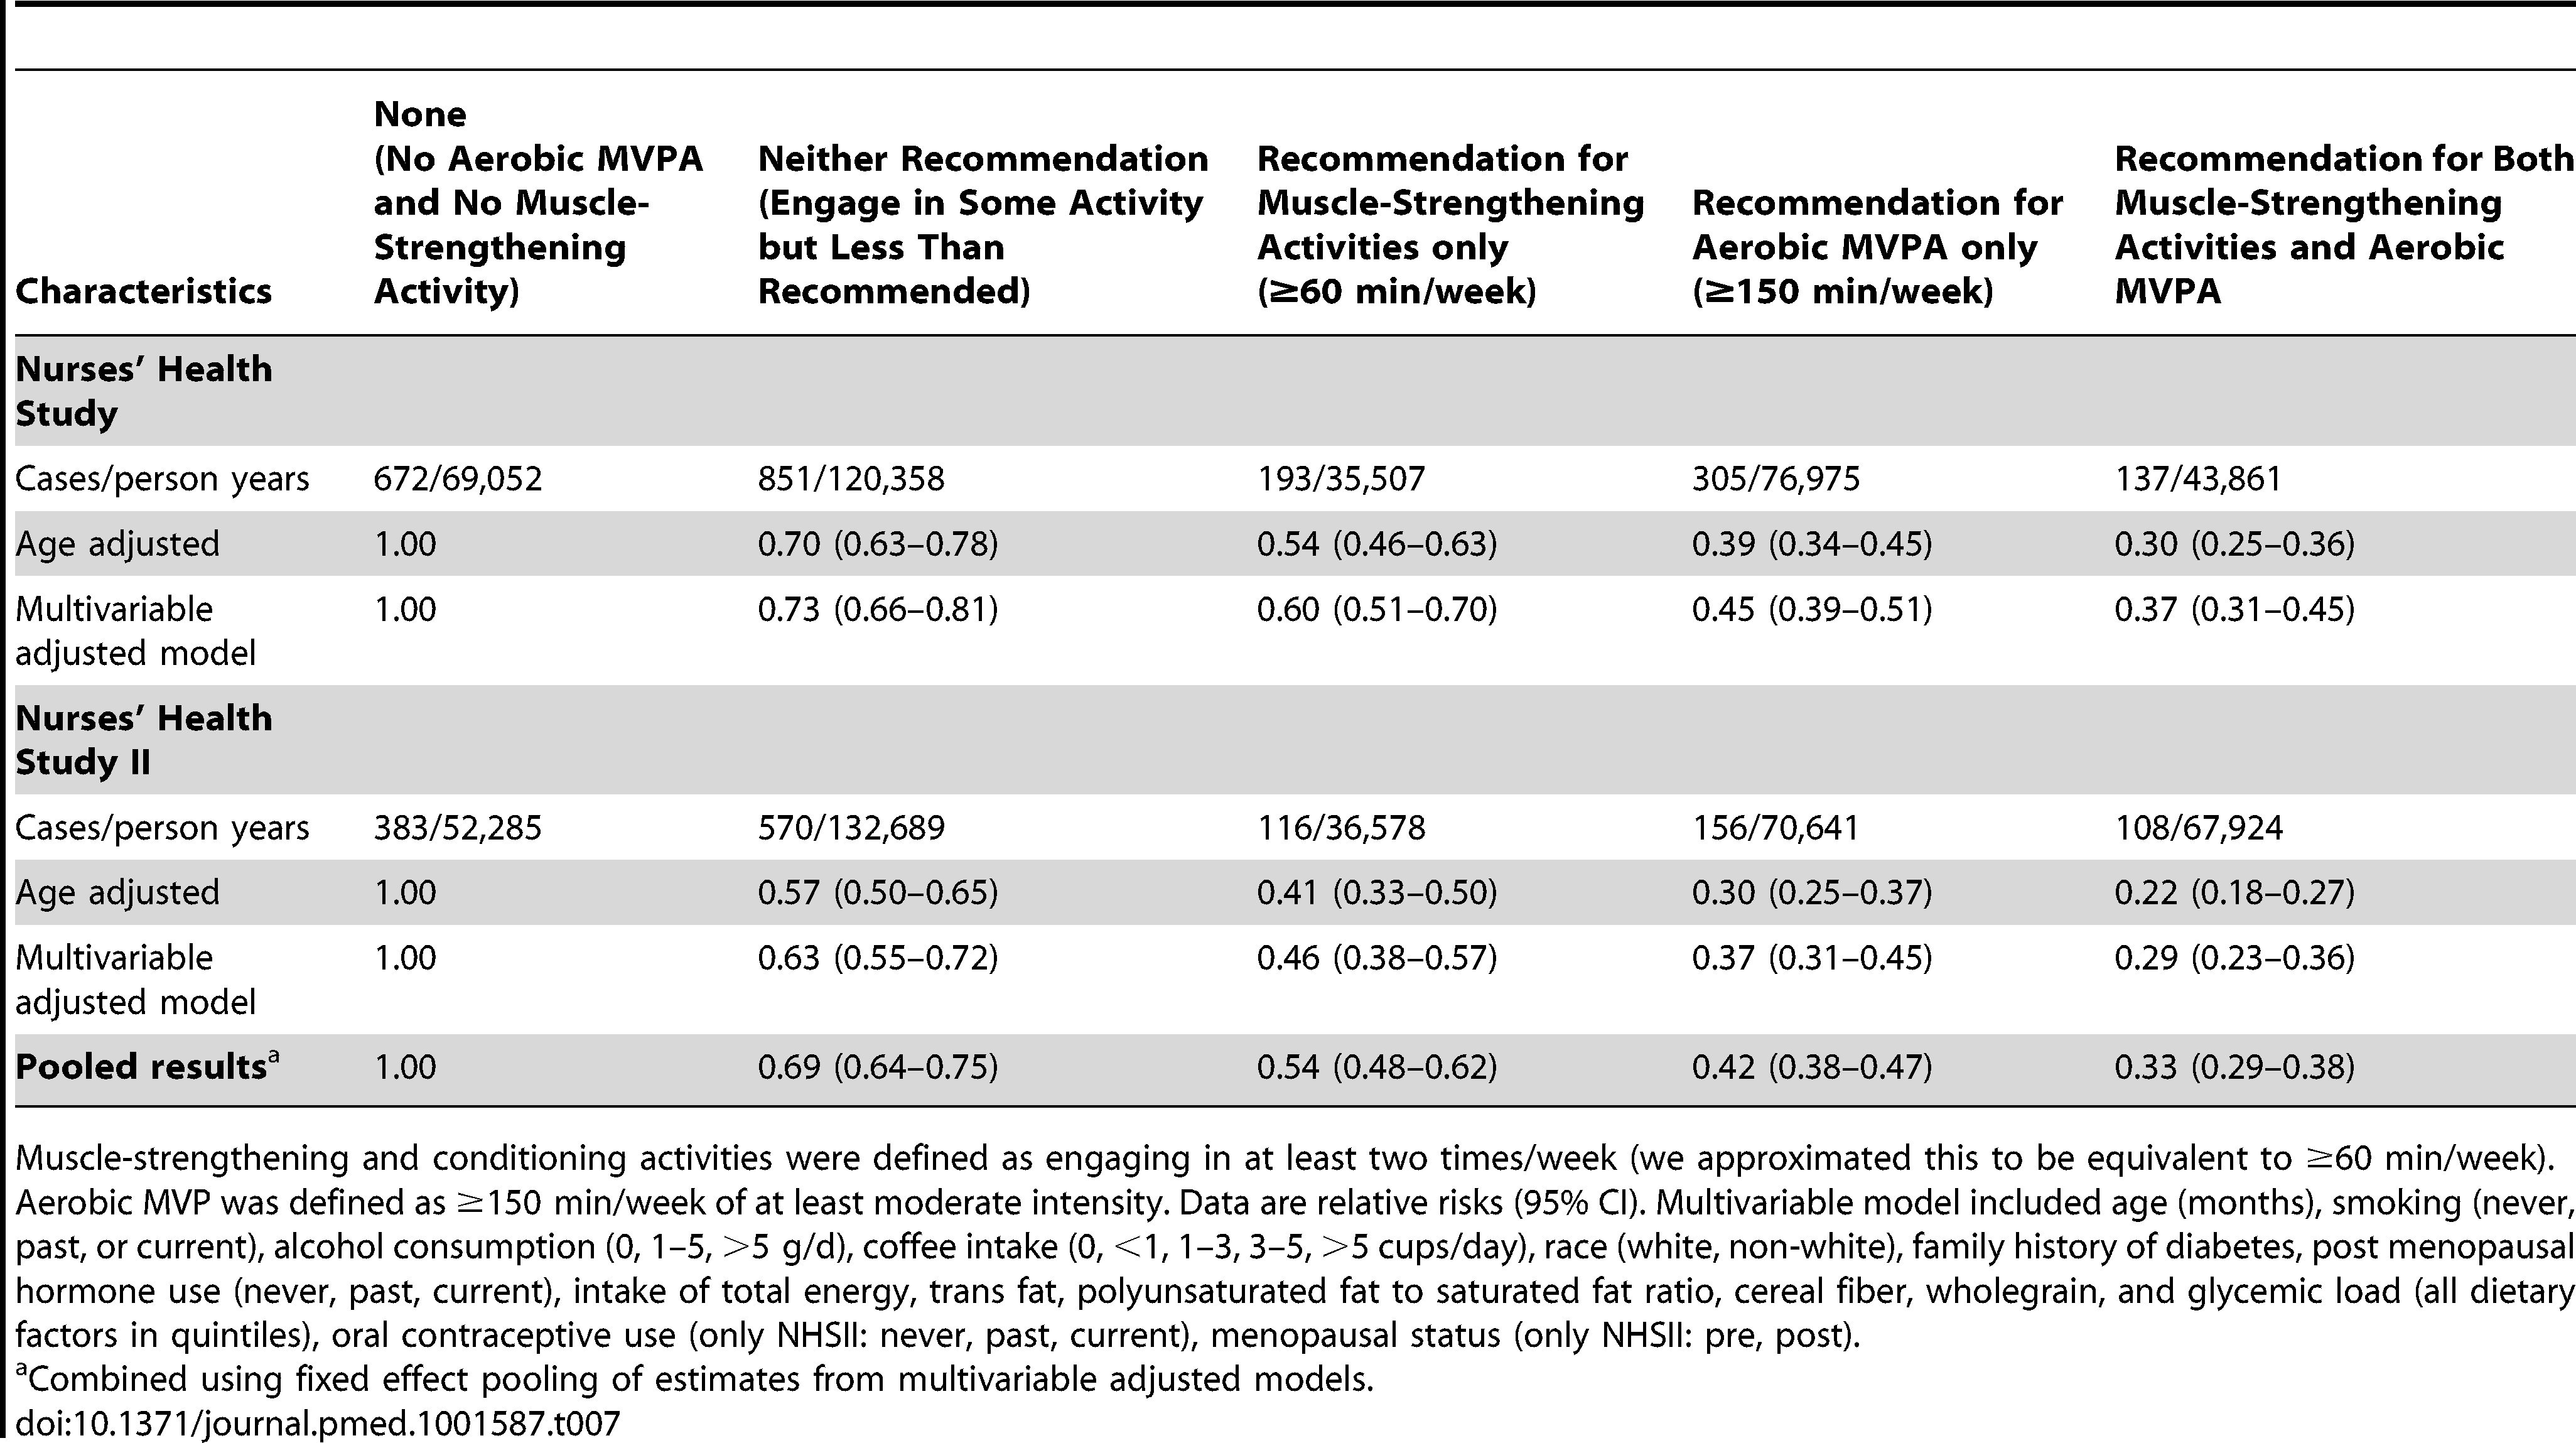 Joint association of total muscle-strengthening and conditioning activities and aerobic MVPA according to recommendations <em class=&quot;ref&quot;>[13]</em>–<em class=&quot;ref&quot;>[15]</em> and risk of type 2 diabetes in women from the Nurses' Health Study (2000–2008) and Nurses' Health Study II (2001–2009).